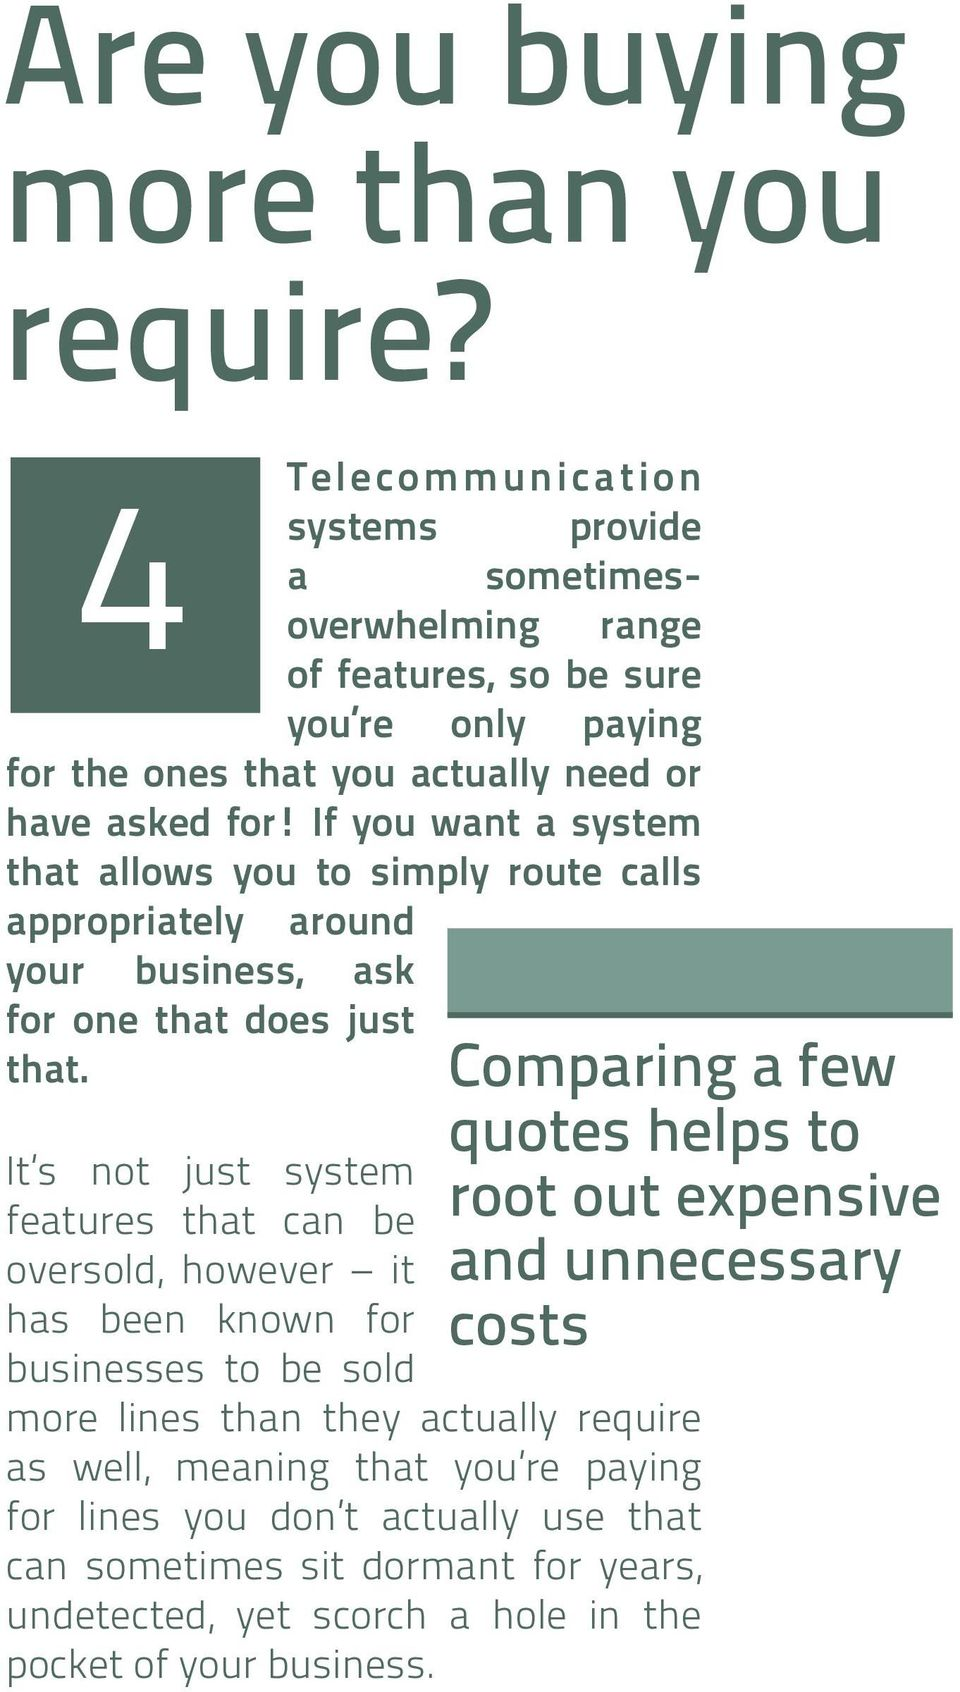 If you want a system that allows you to simply route calls appropriately around your business, ask for one that does just that.